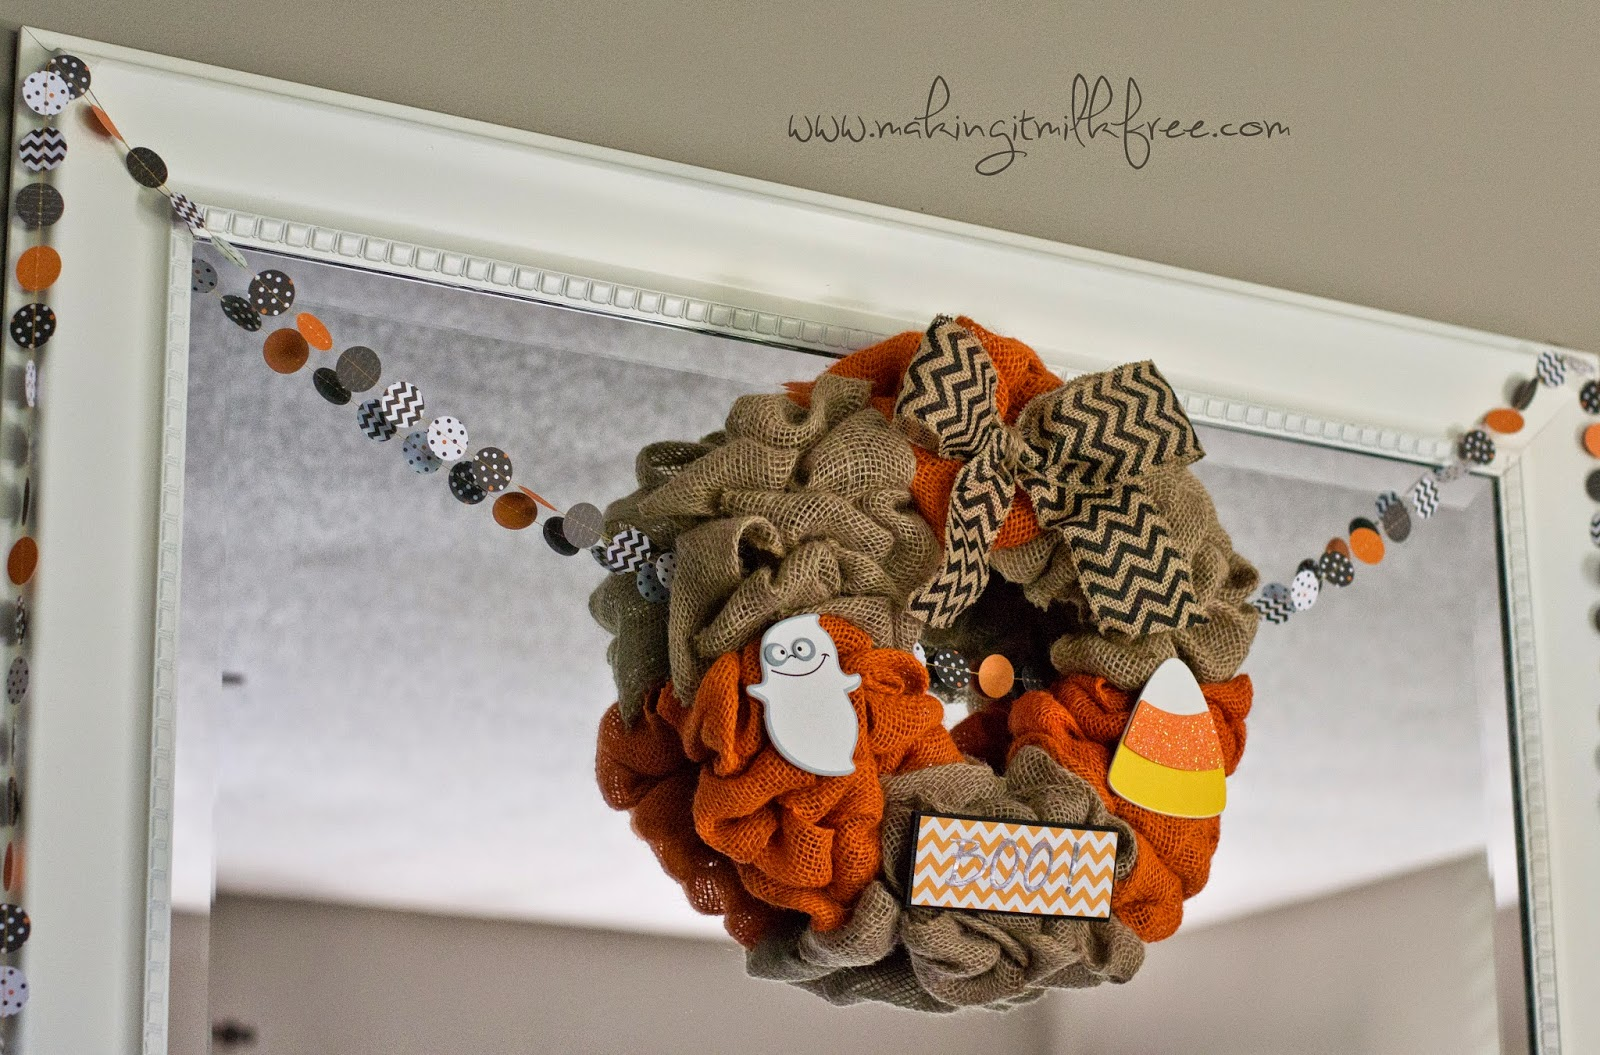 #homedecor #halloween #burlapwreath #garland